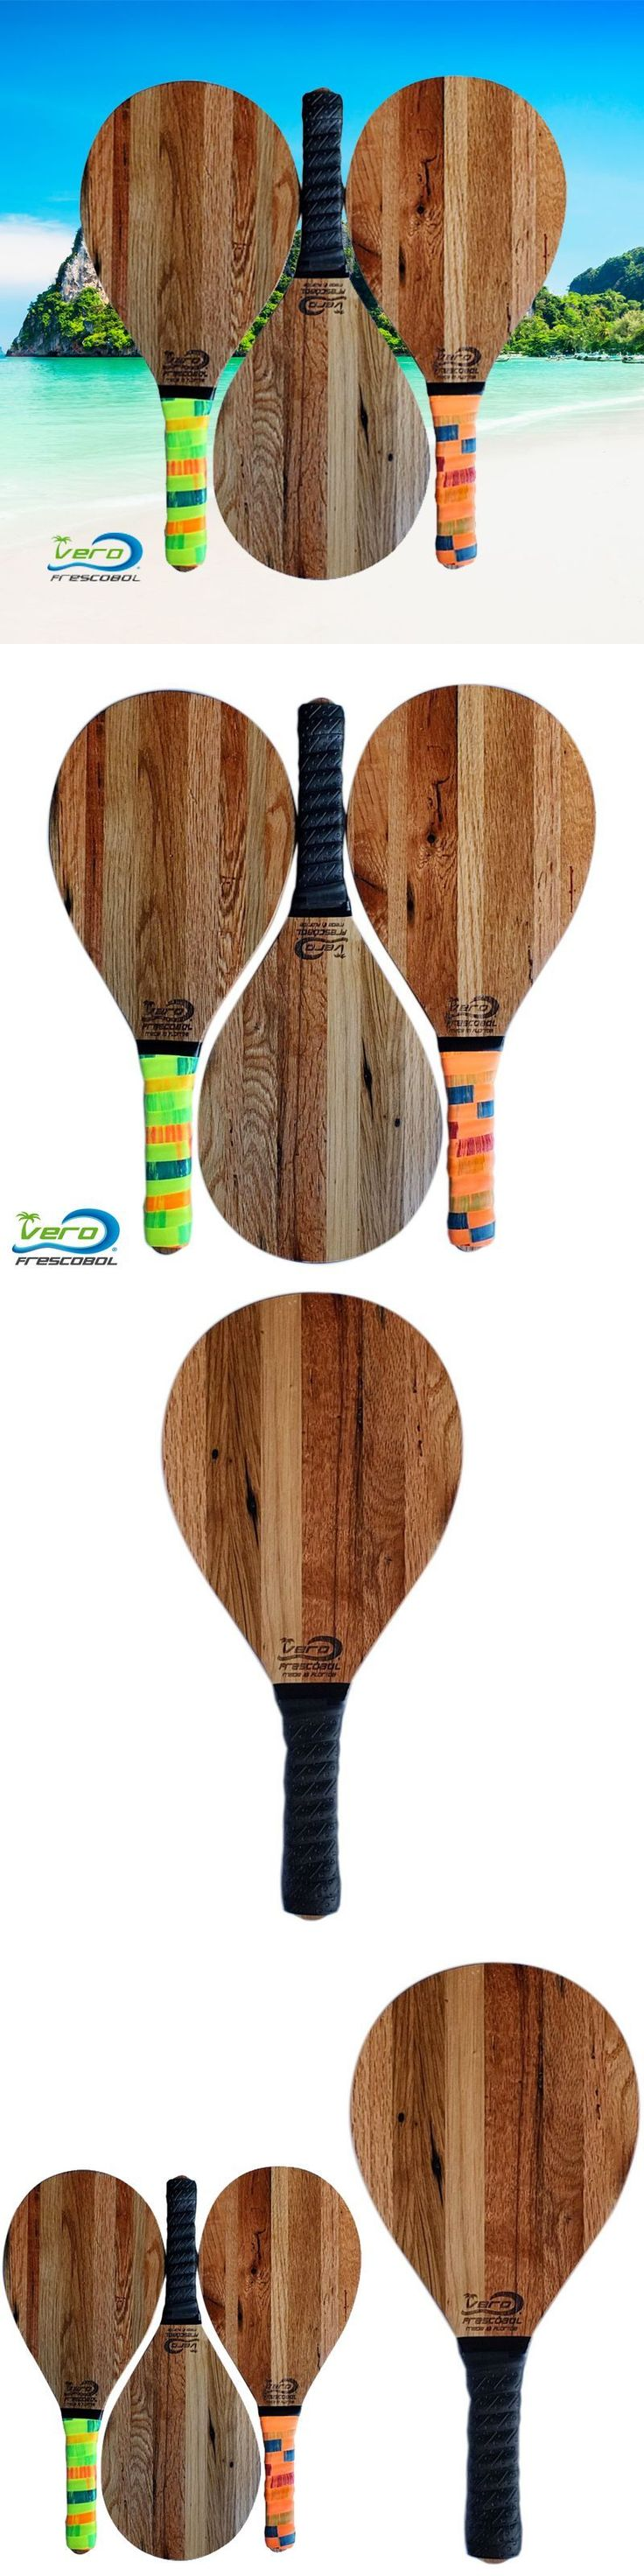 Other Tennis and Racquet Sports 159135: One Frescobol Paddle, Reclaimed Tobacco Barn Wood Racket, Black Grip -> BUY IT NOW ONLY: $59.9 on eBay!